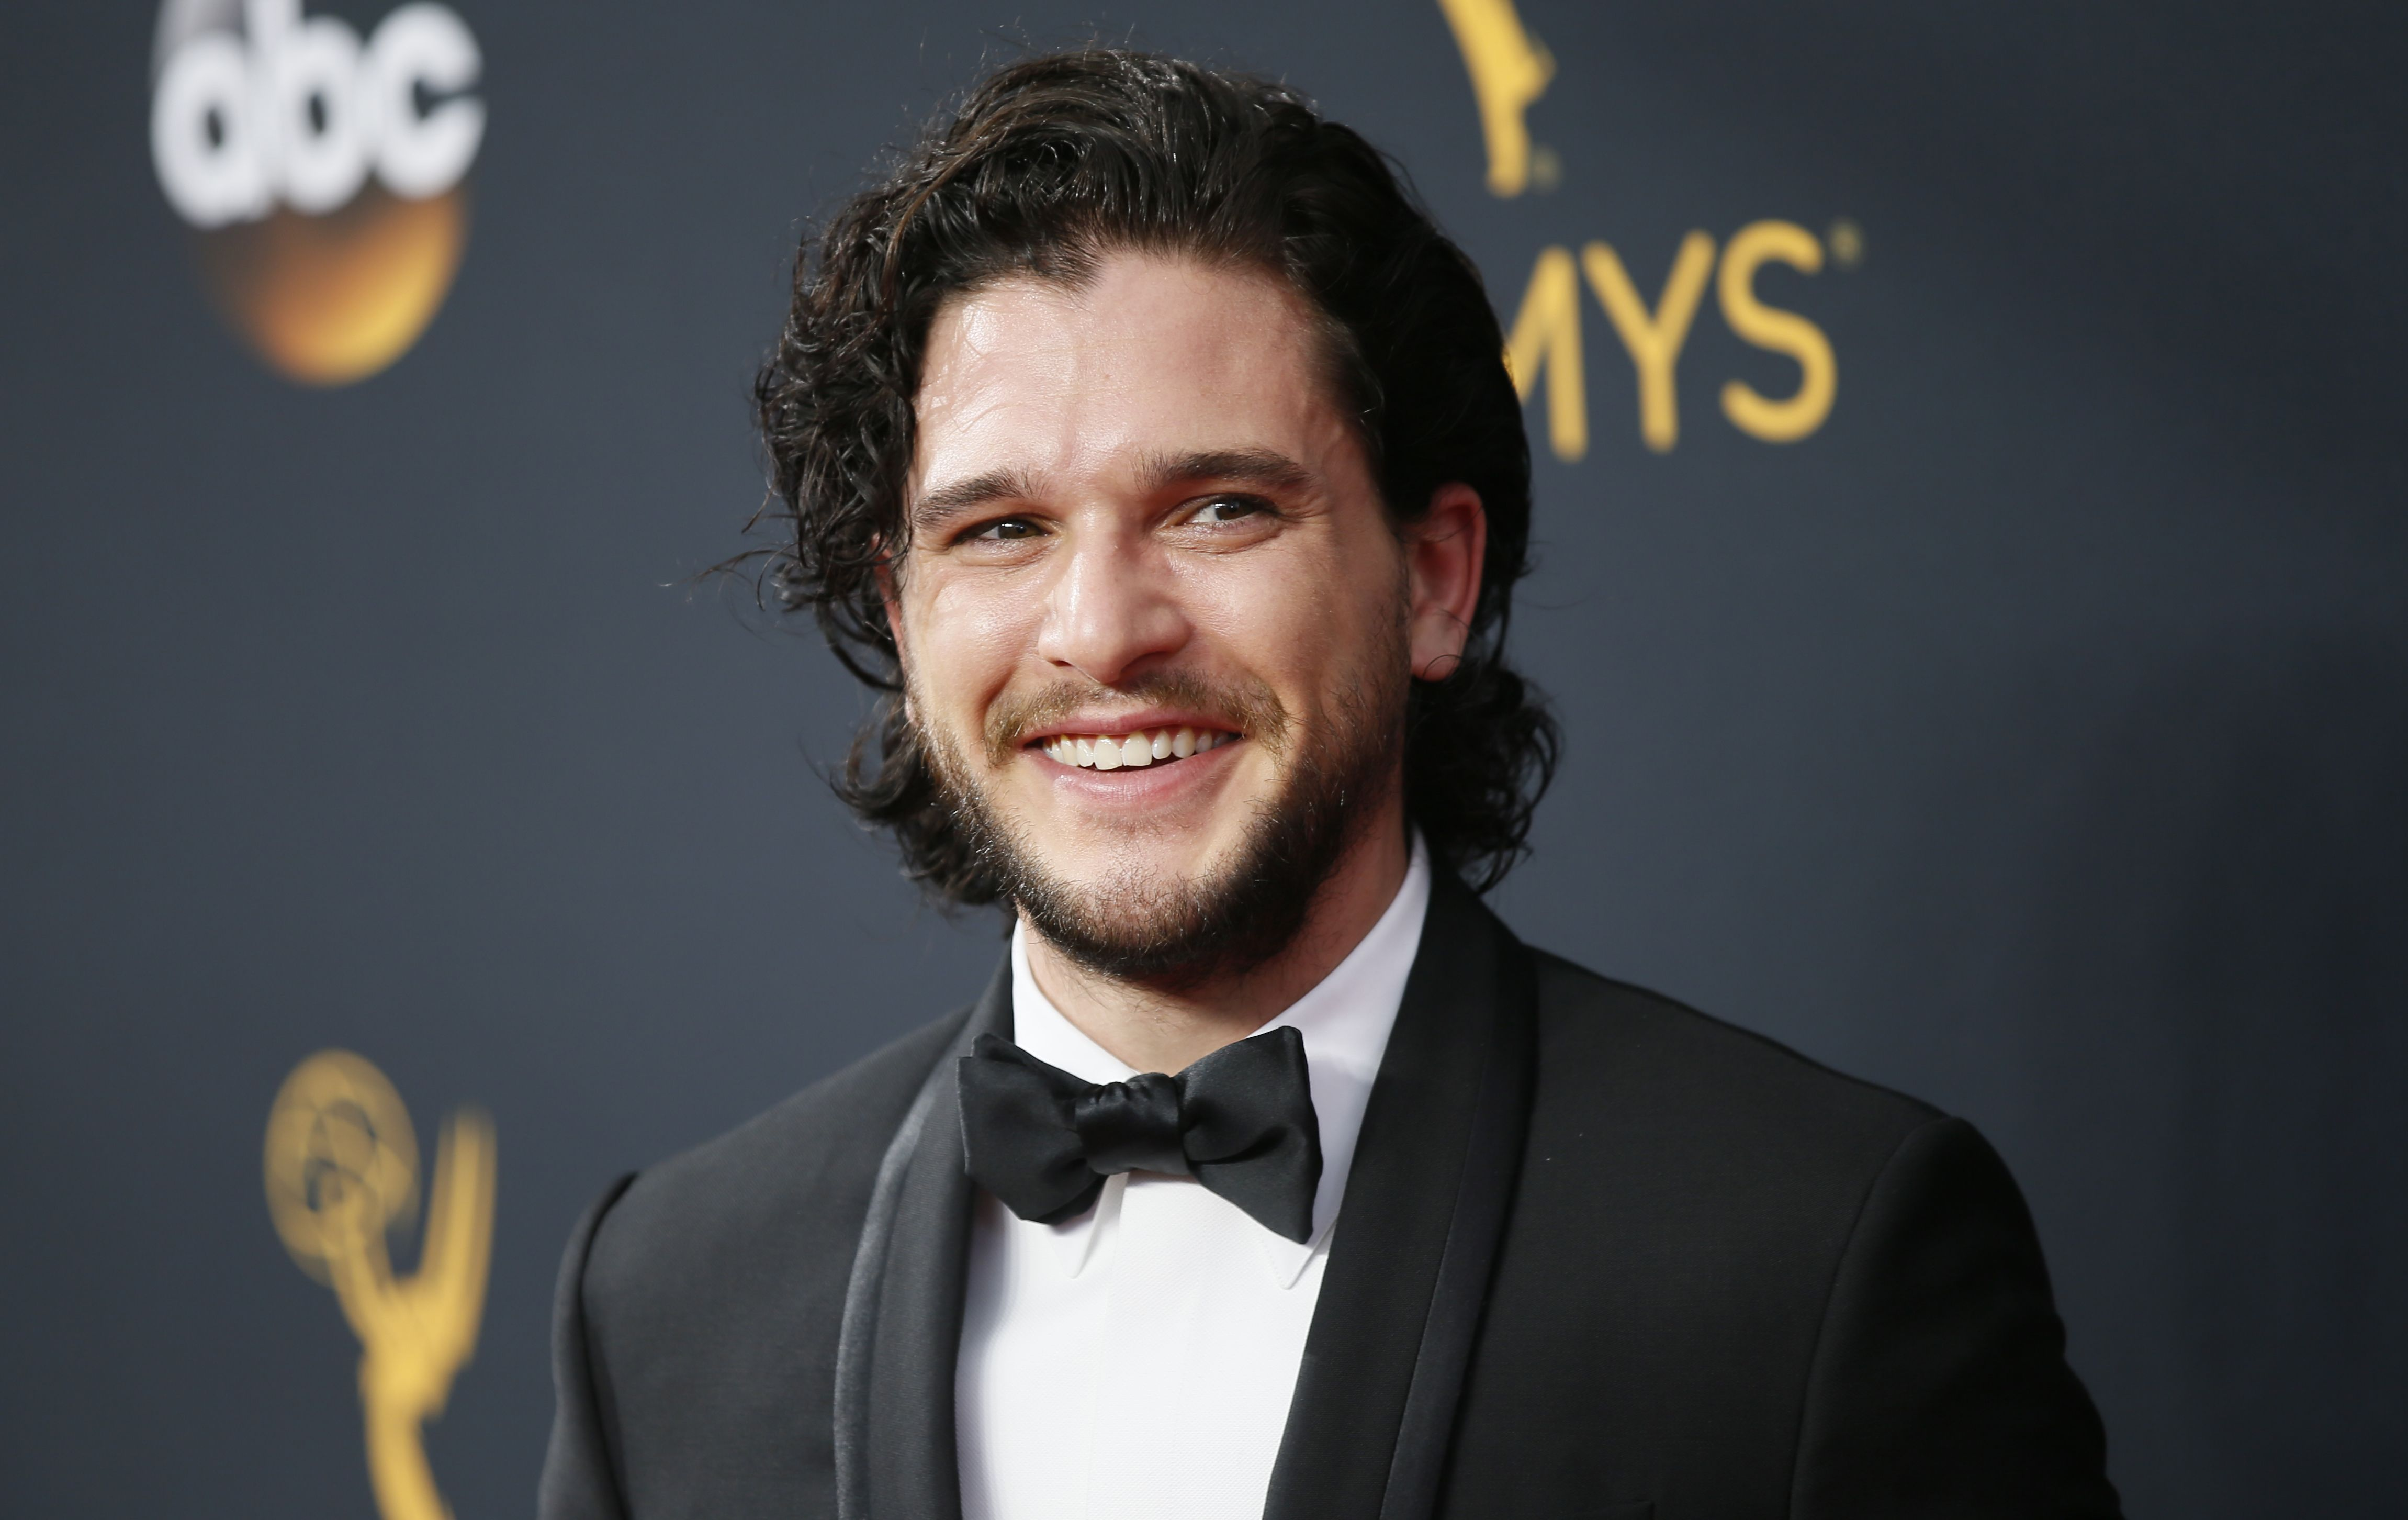 Kit Harington Apologizes, Fans React to Last Night's Episode of Game ofThrones' images